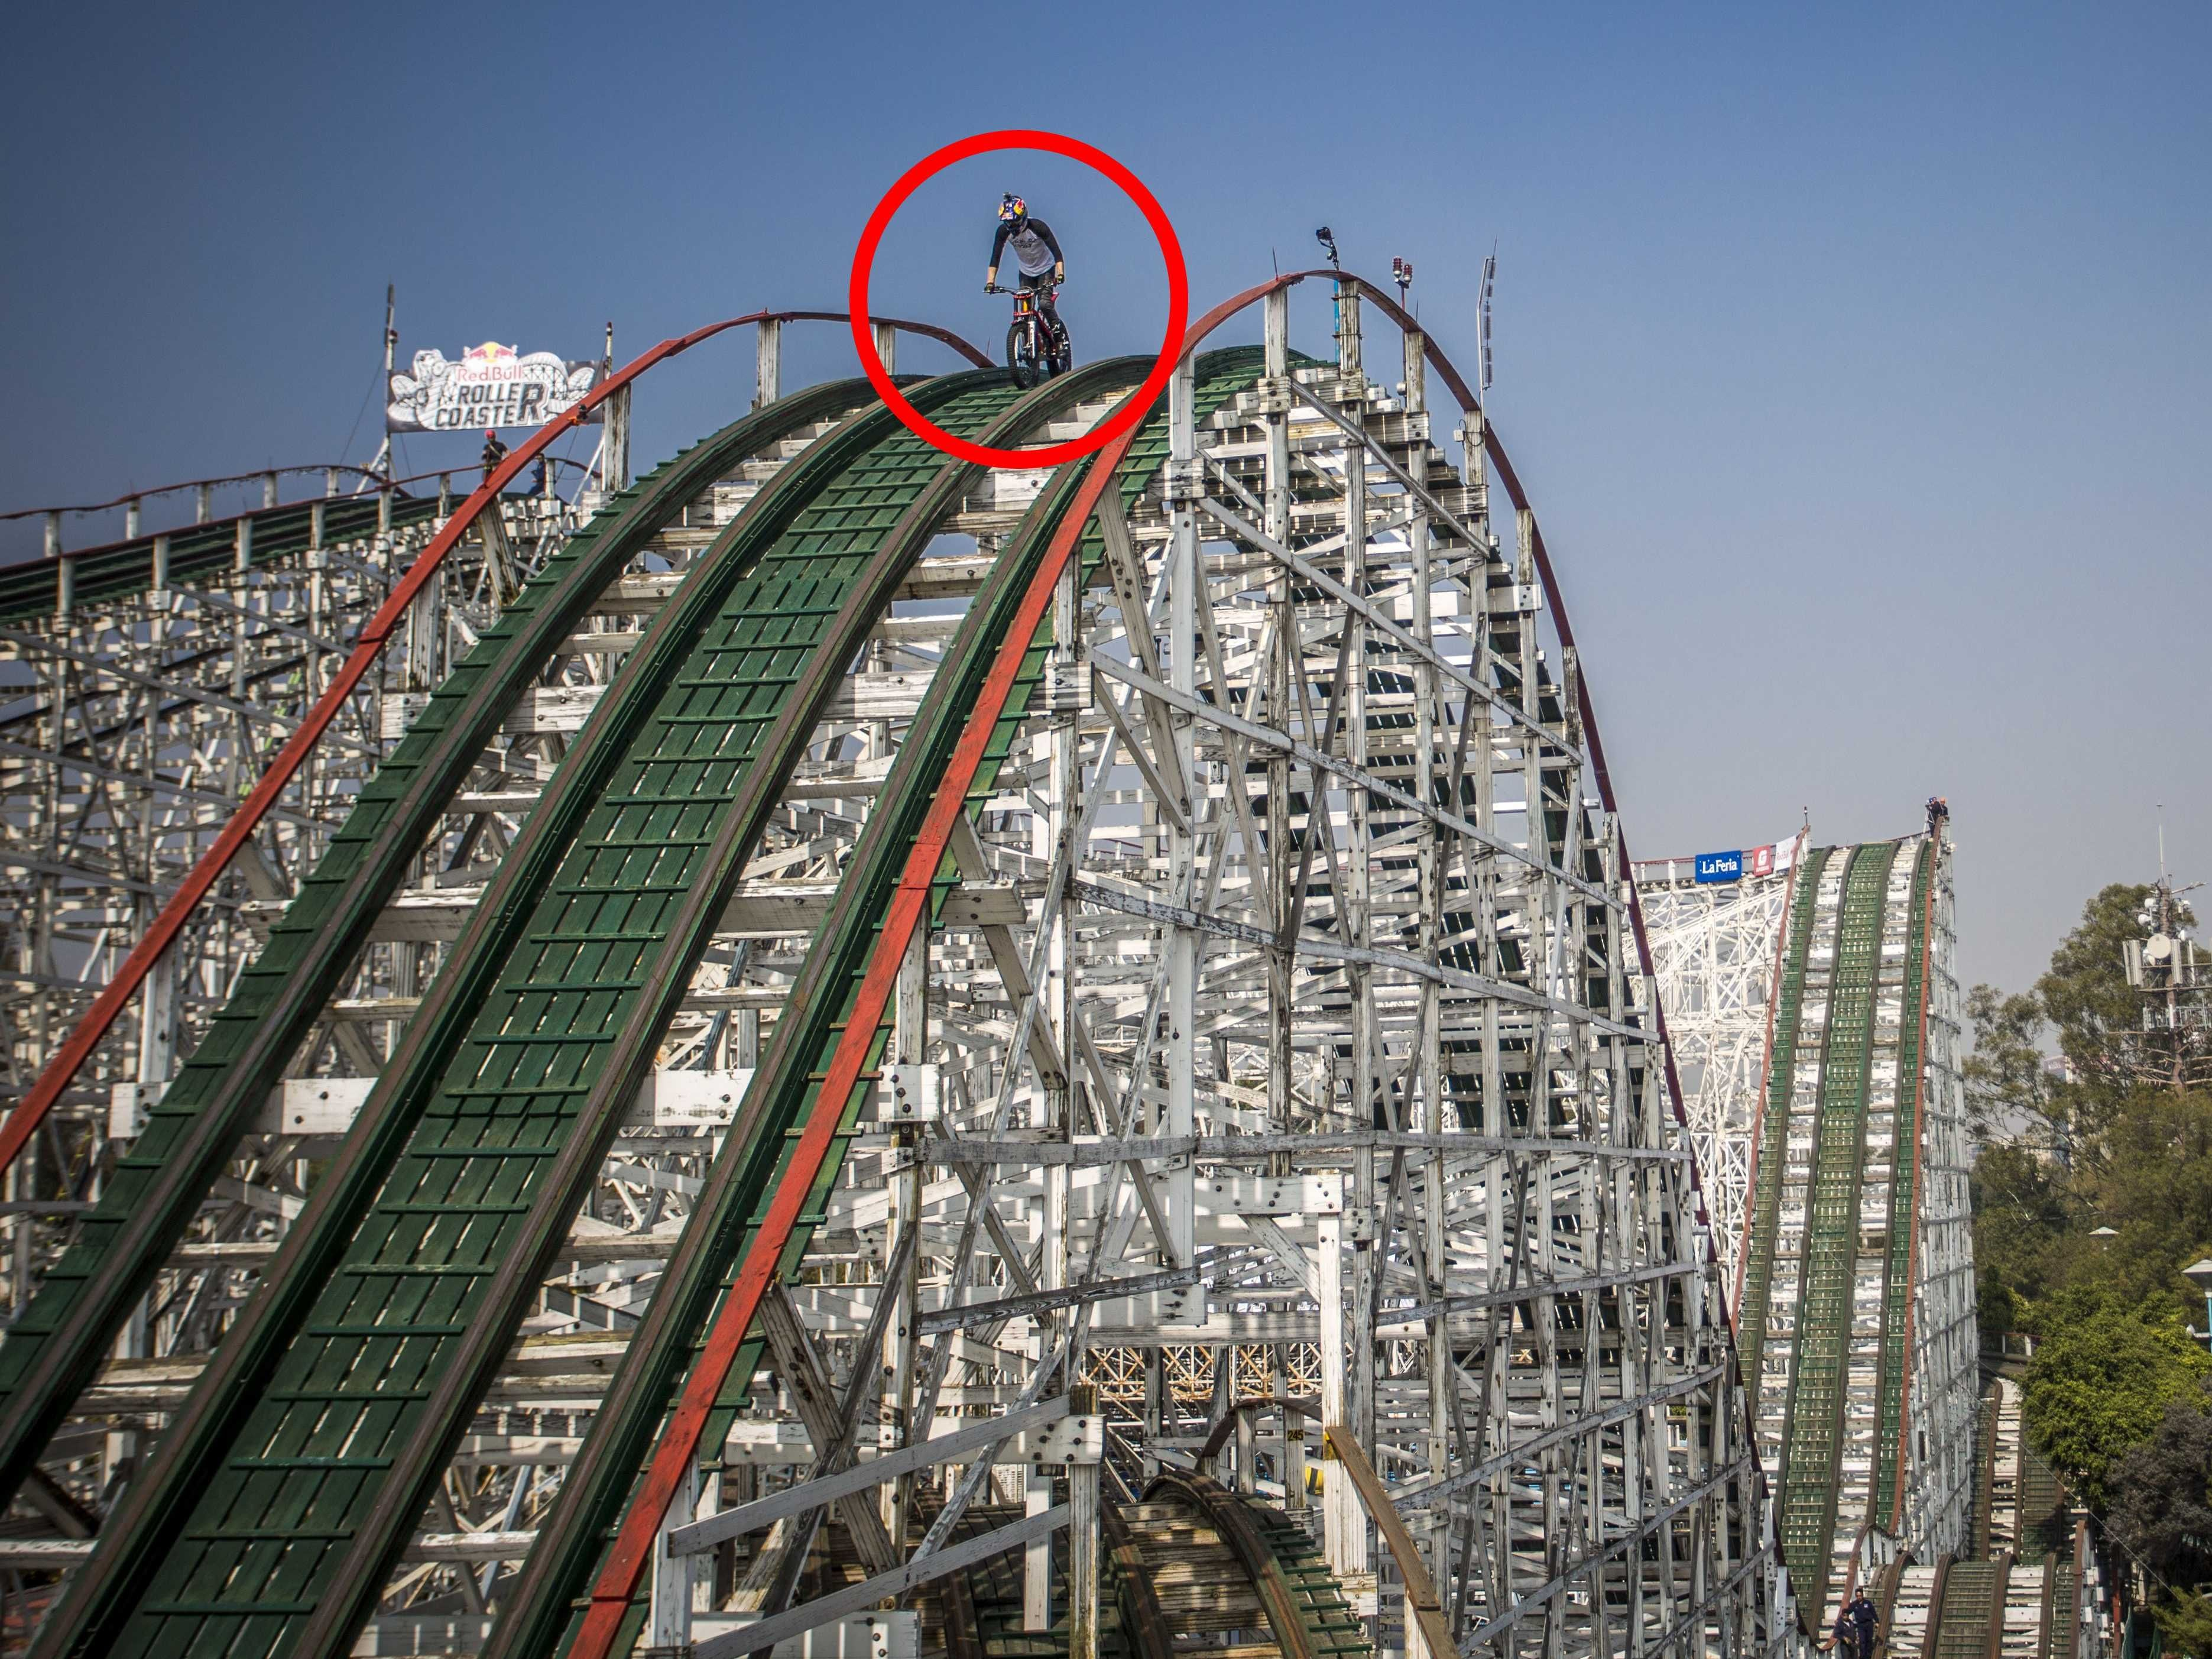 This guy took his dirt bike and rode it on a roller coaster track ...